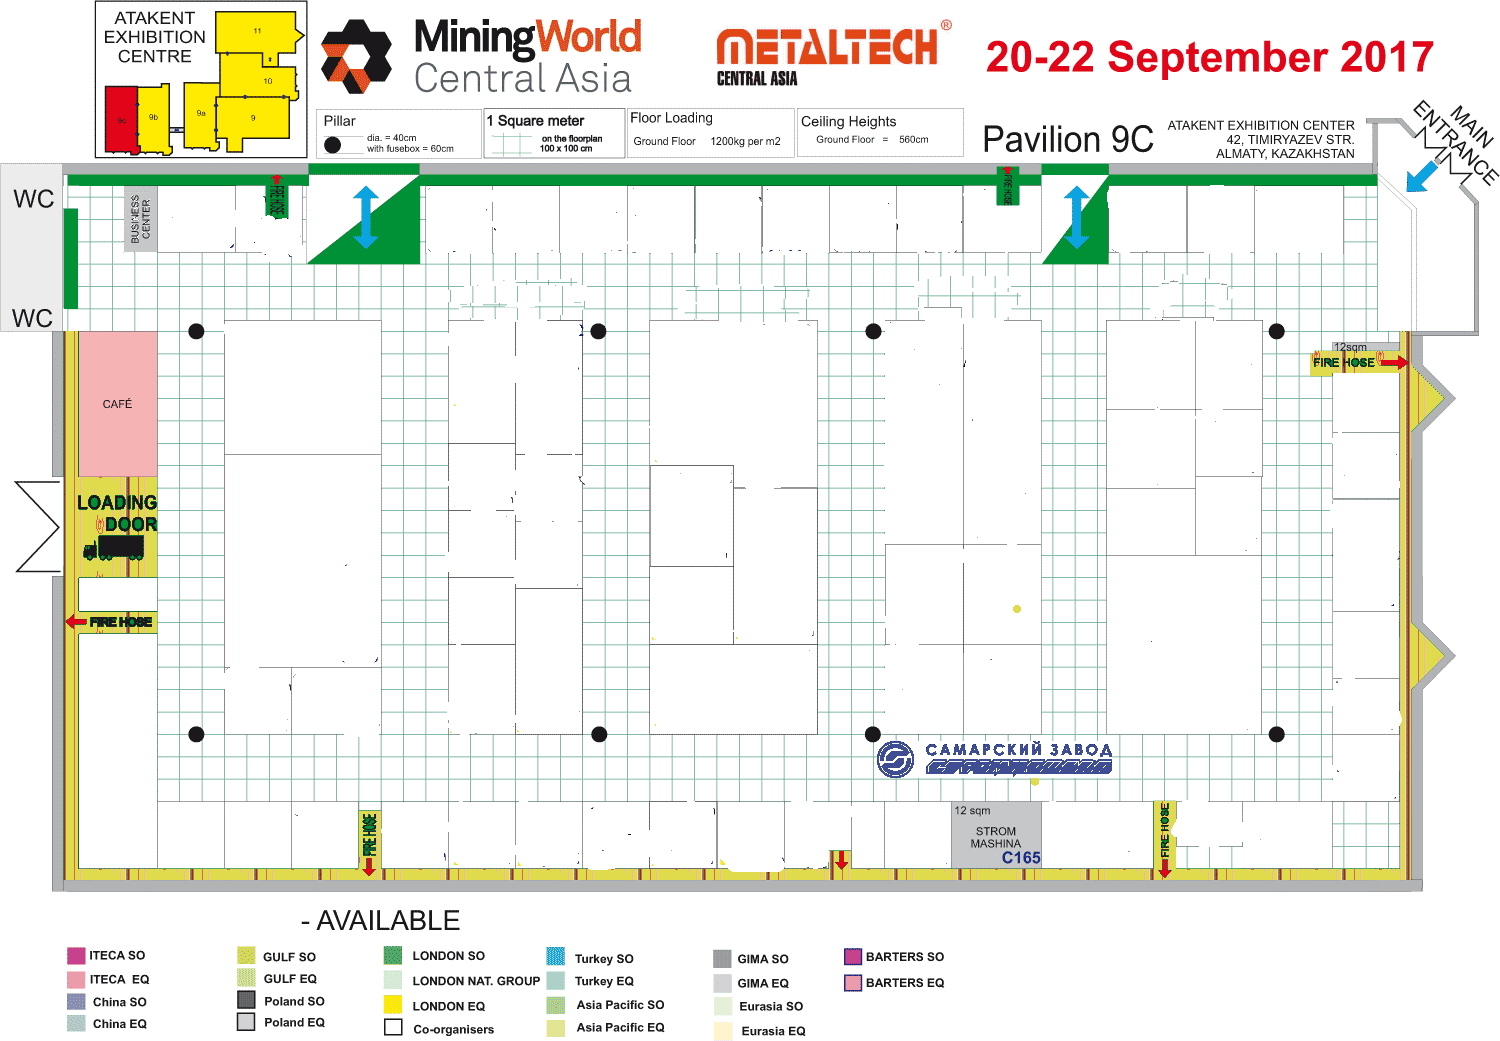 23rd Central Asian International Mining Exploration & Mining Equipment Exhibition and Forum